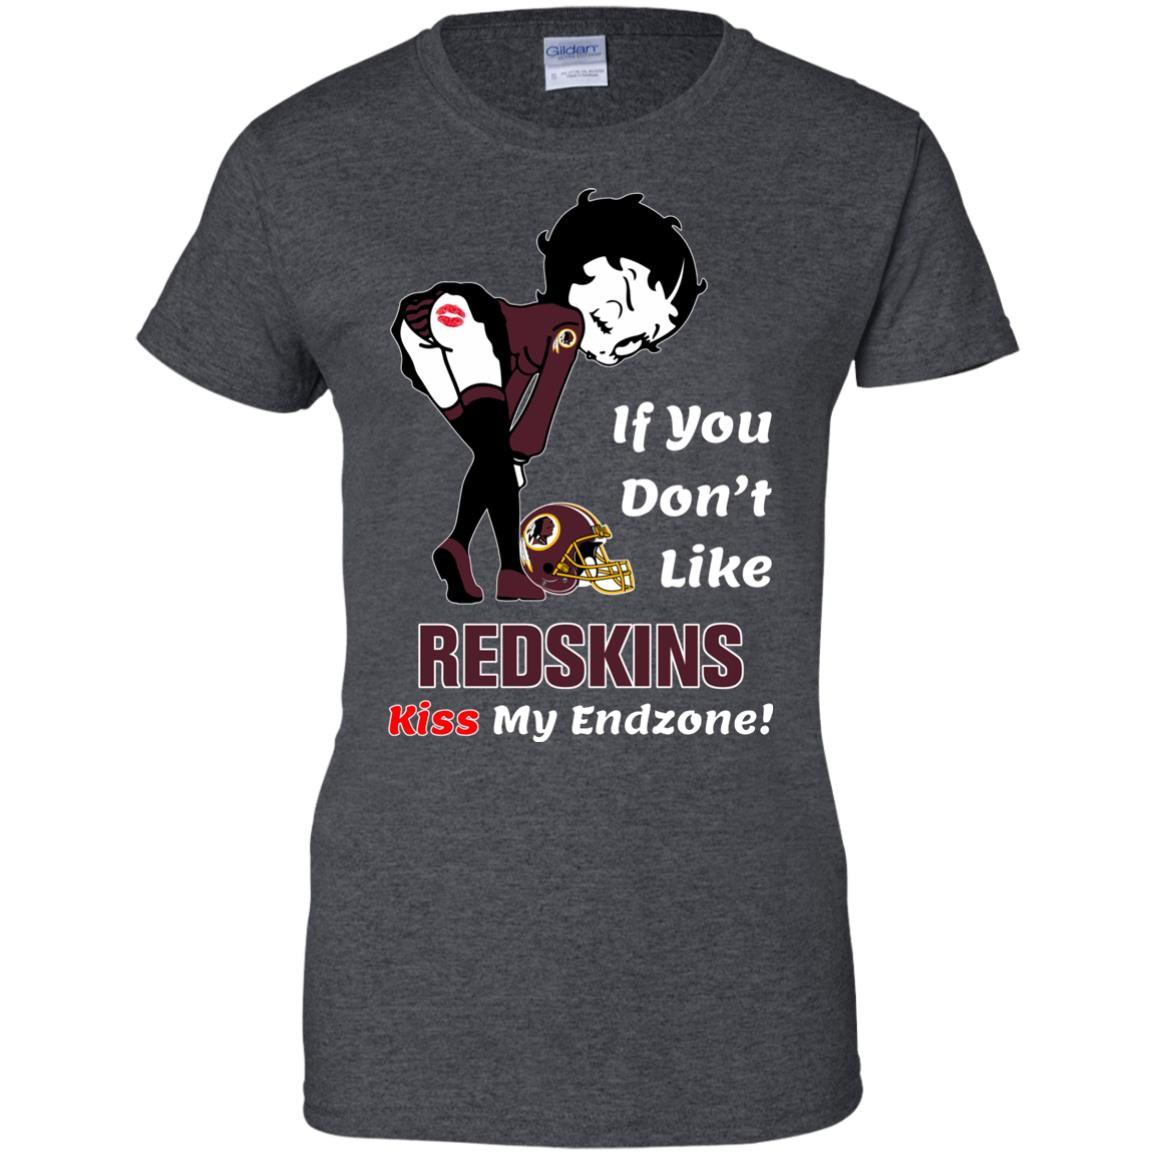 image 467px Betty Boop If you don't like Redskins kiss my endzone t shirt, hoodies, tank